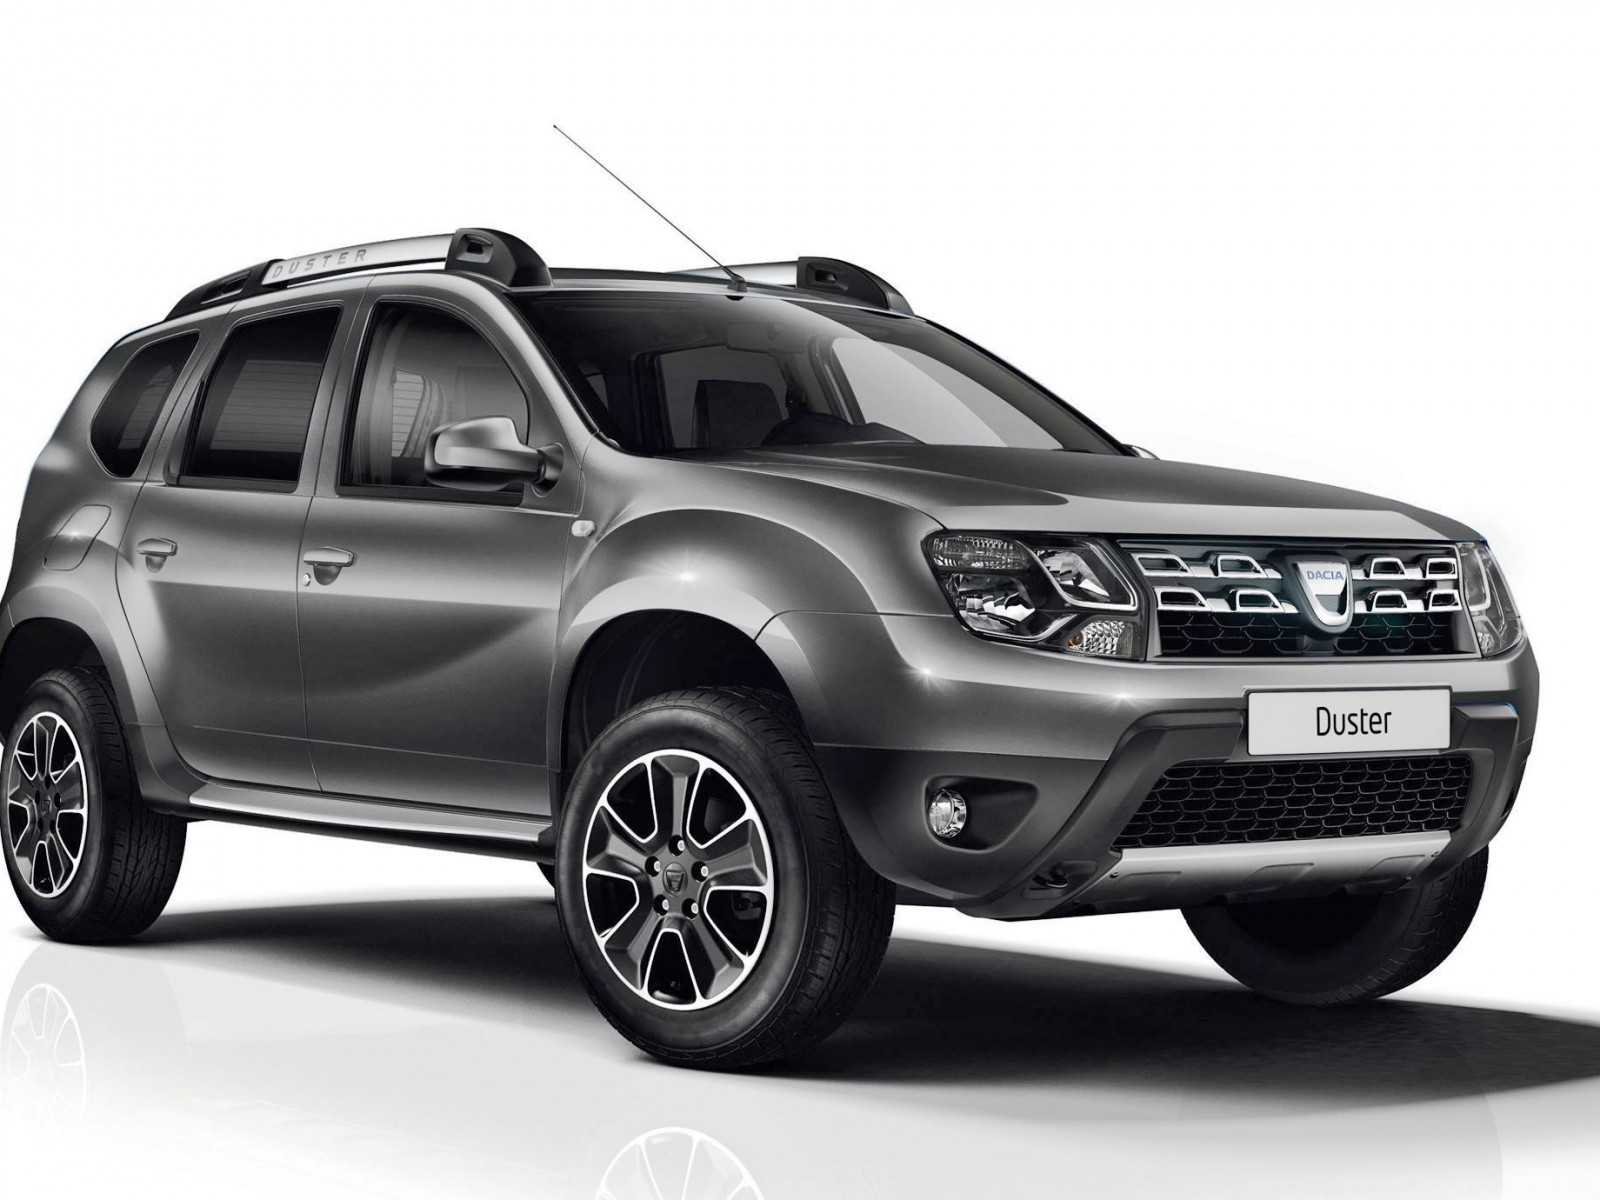 2016 dacia duster urban explorer 7. Black Bedroom Furniture Sets. Home Design Ideas